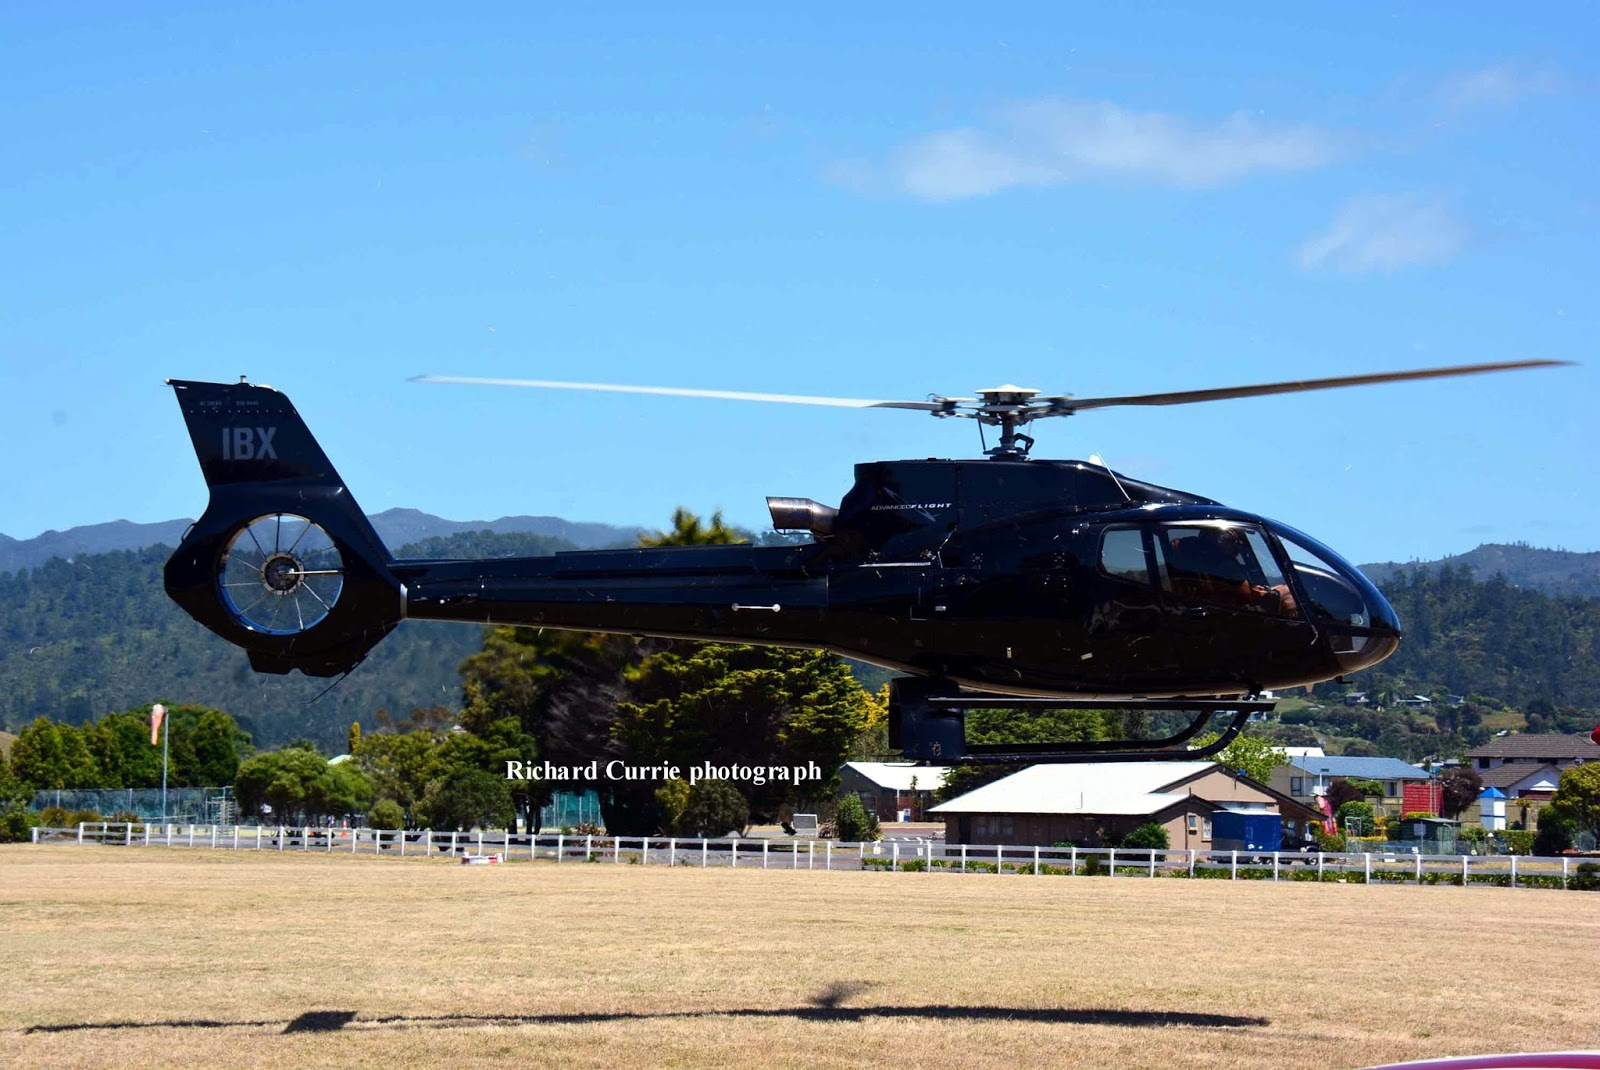 advanced heli flight ltd with Todays Posting From Pauanui on Rocketroute Air Bp At Nbaa Bace 2016 together with Nz royal new zealand air force as well A109 aw109sp additionally Explorer gehms also R44 robinson.